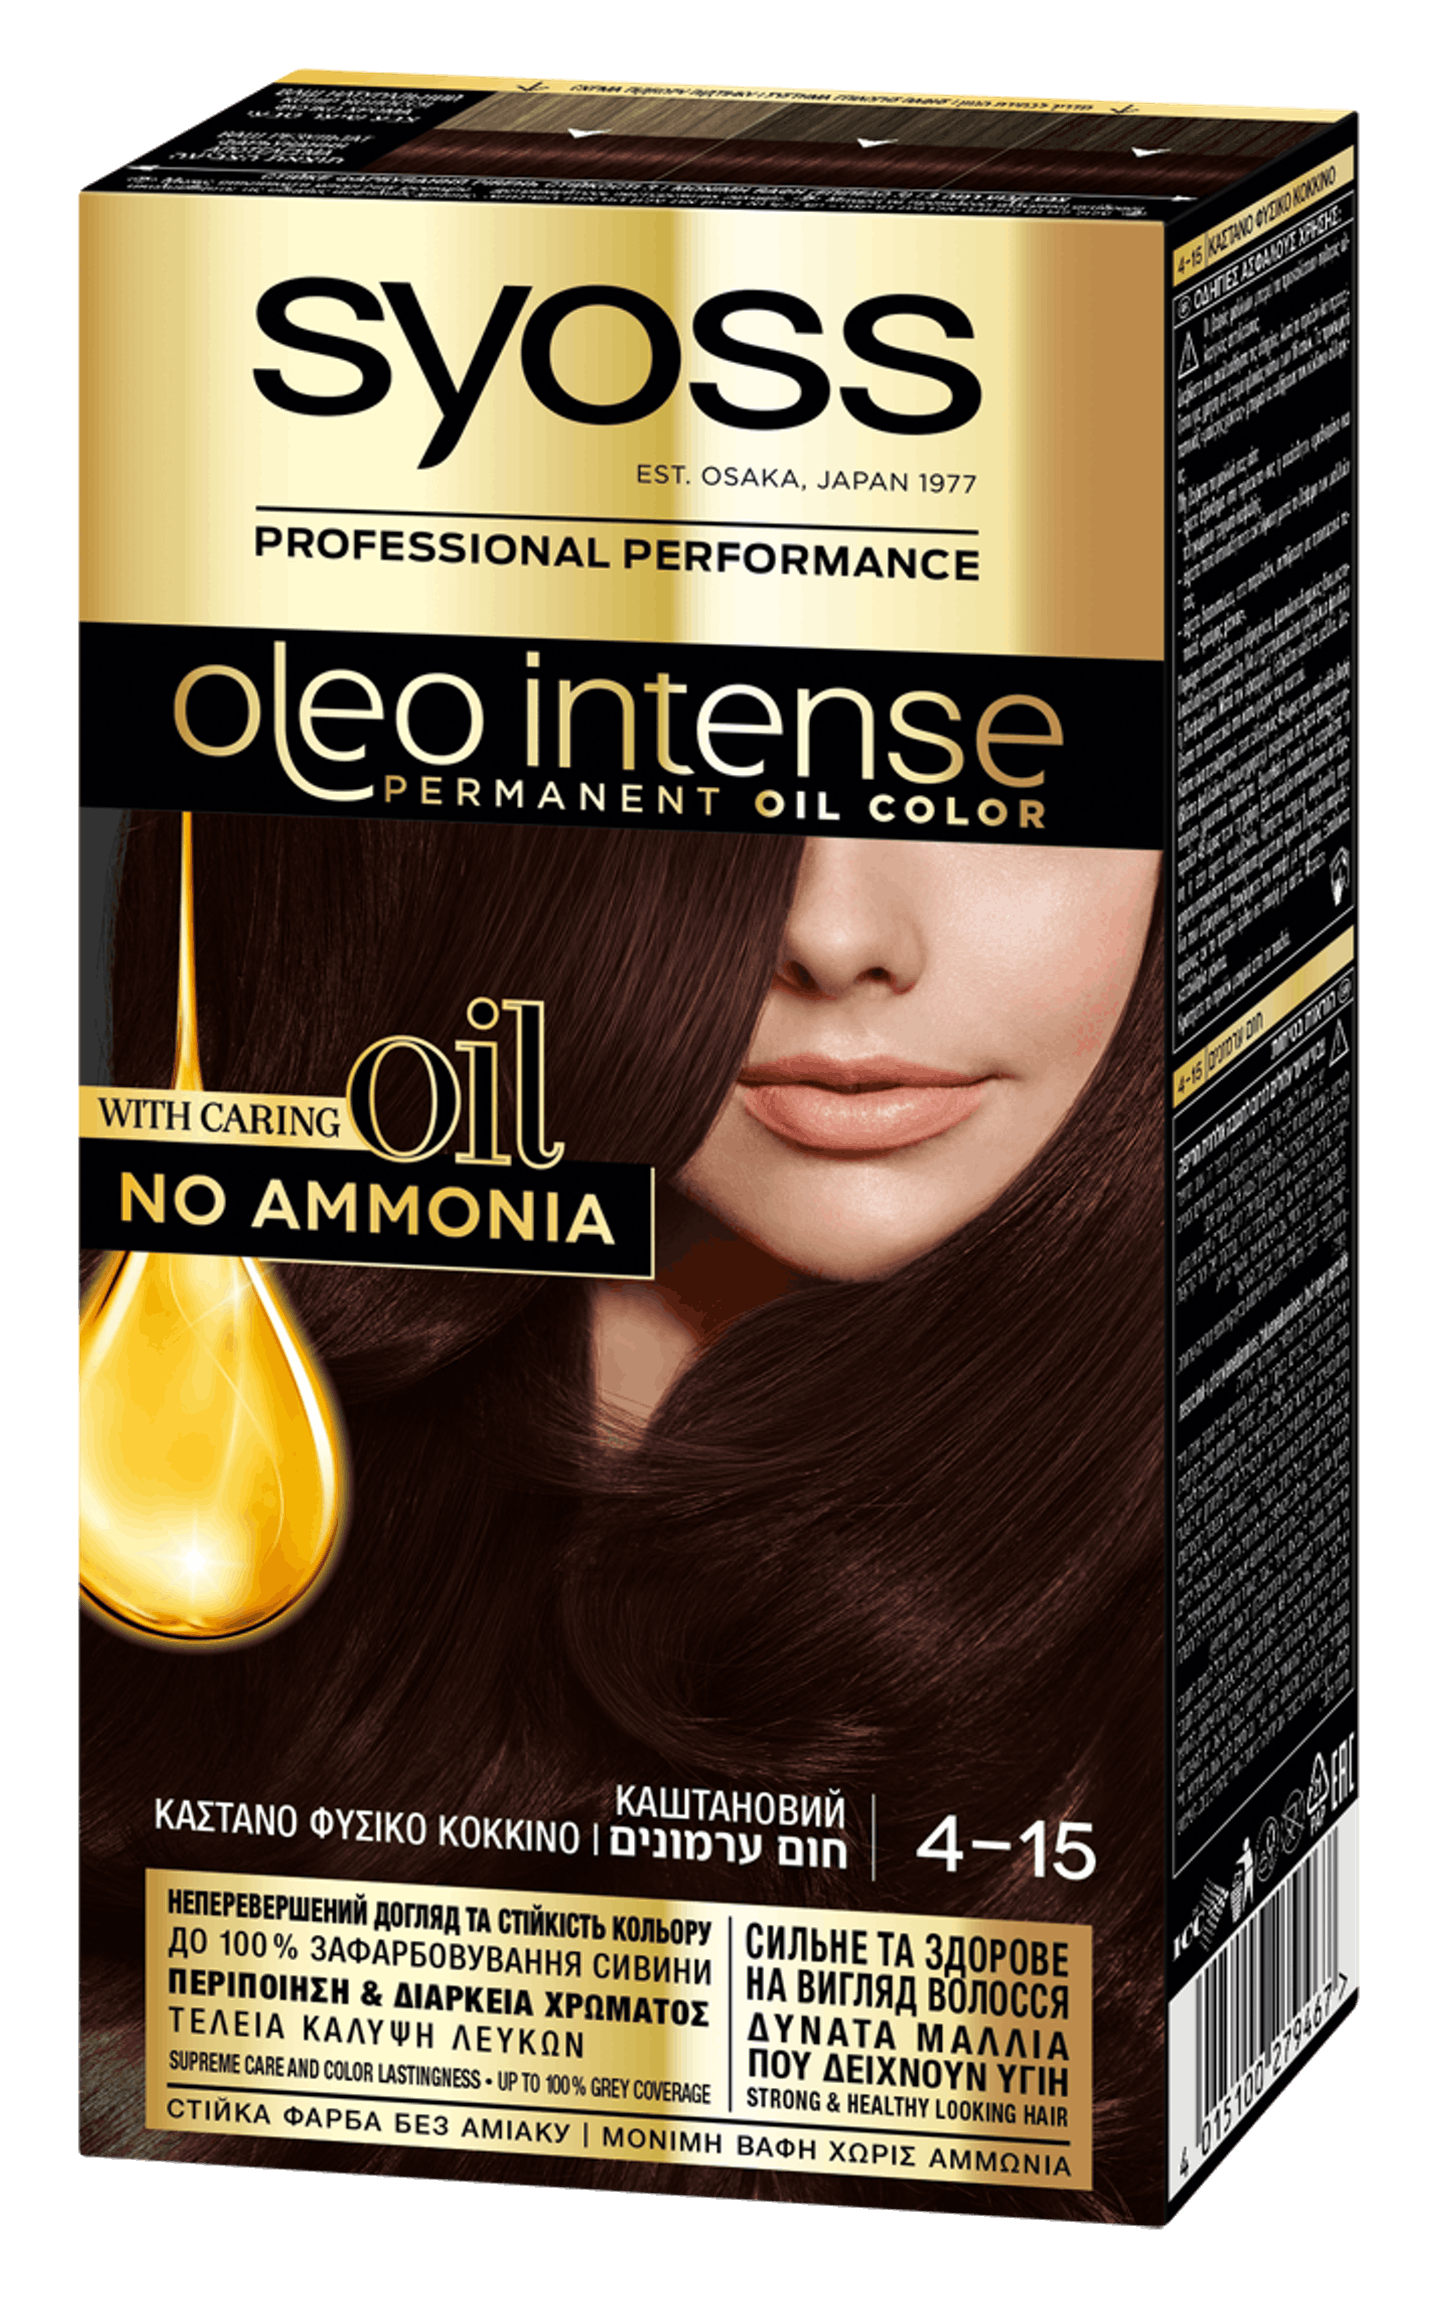 Syoss Oleo Intense Каштановий 4-15